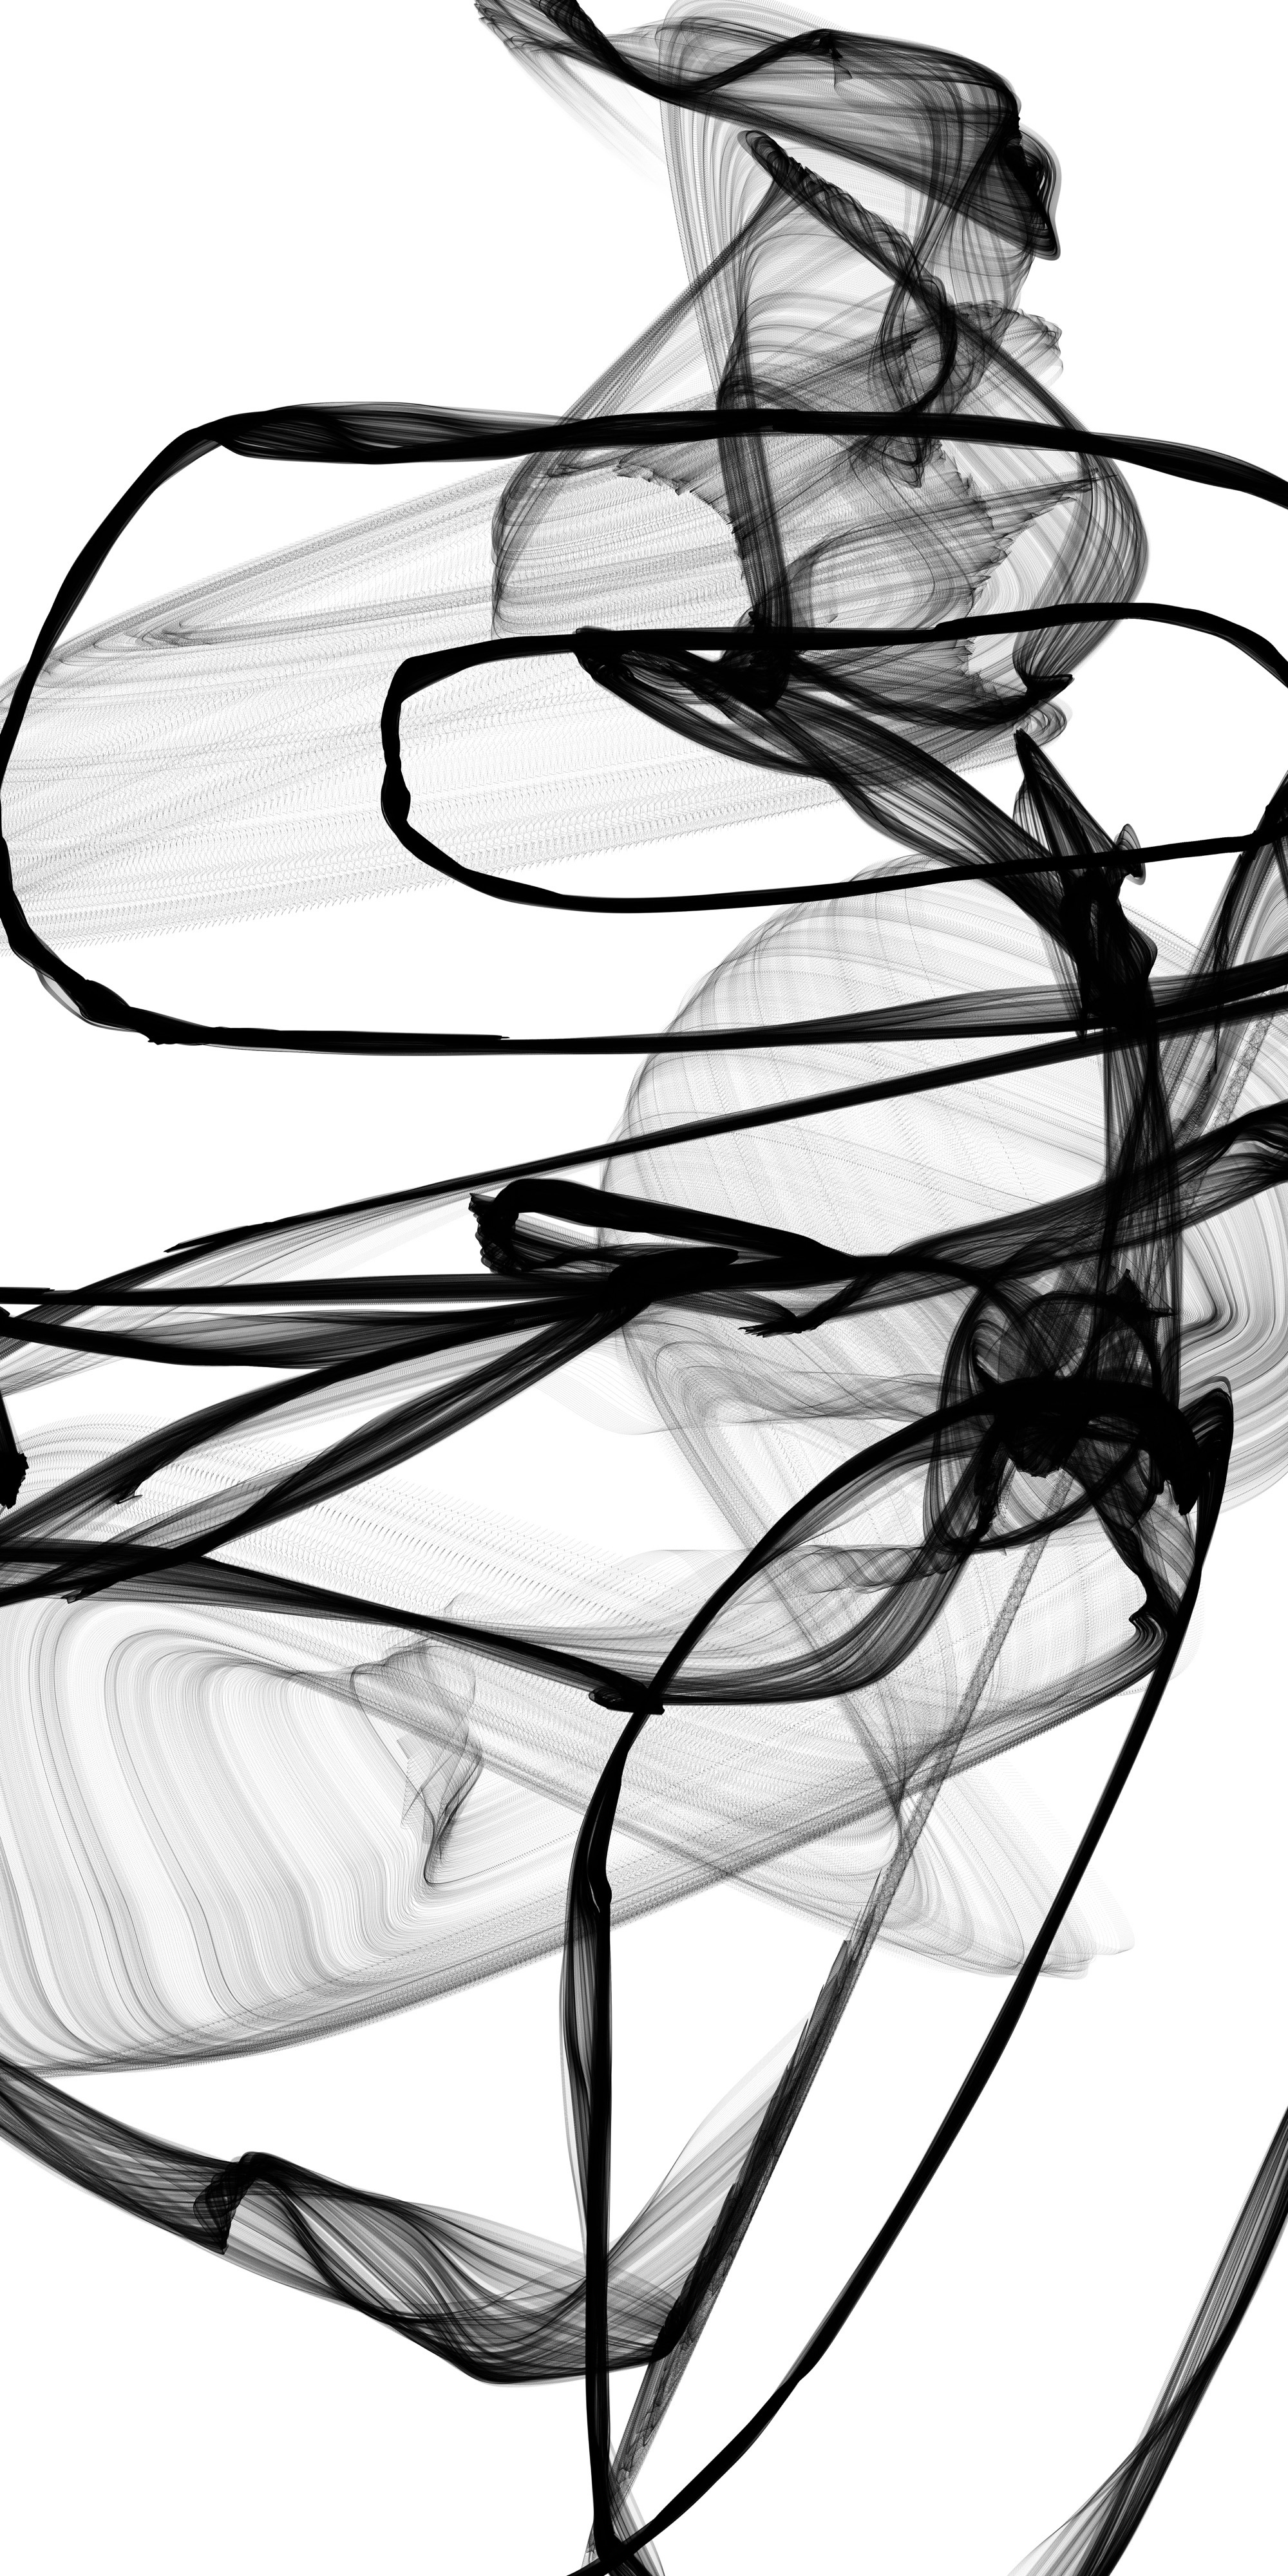 Abstract Expressionism in Black And White 17 artwork by Irena Orlov - art listed for sale on Artplode